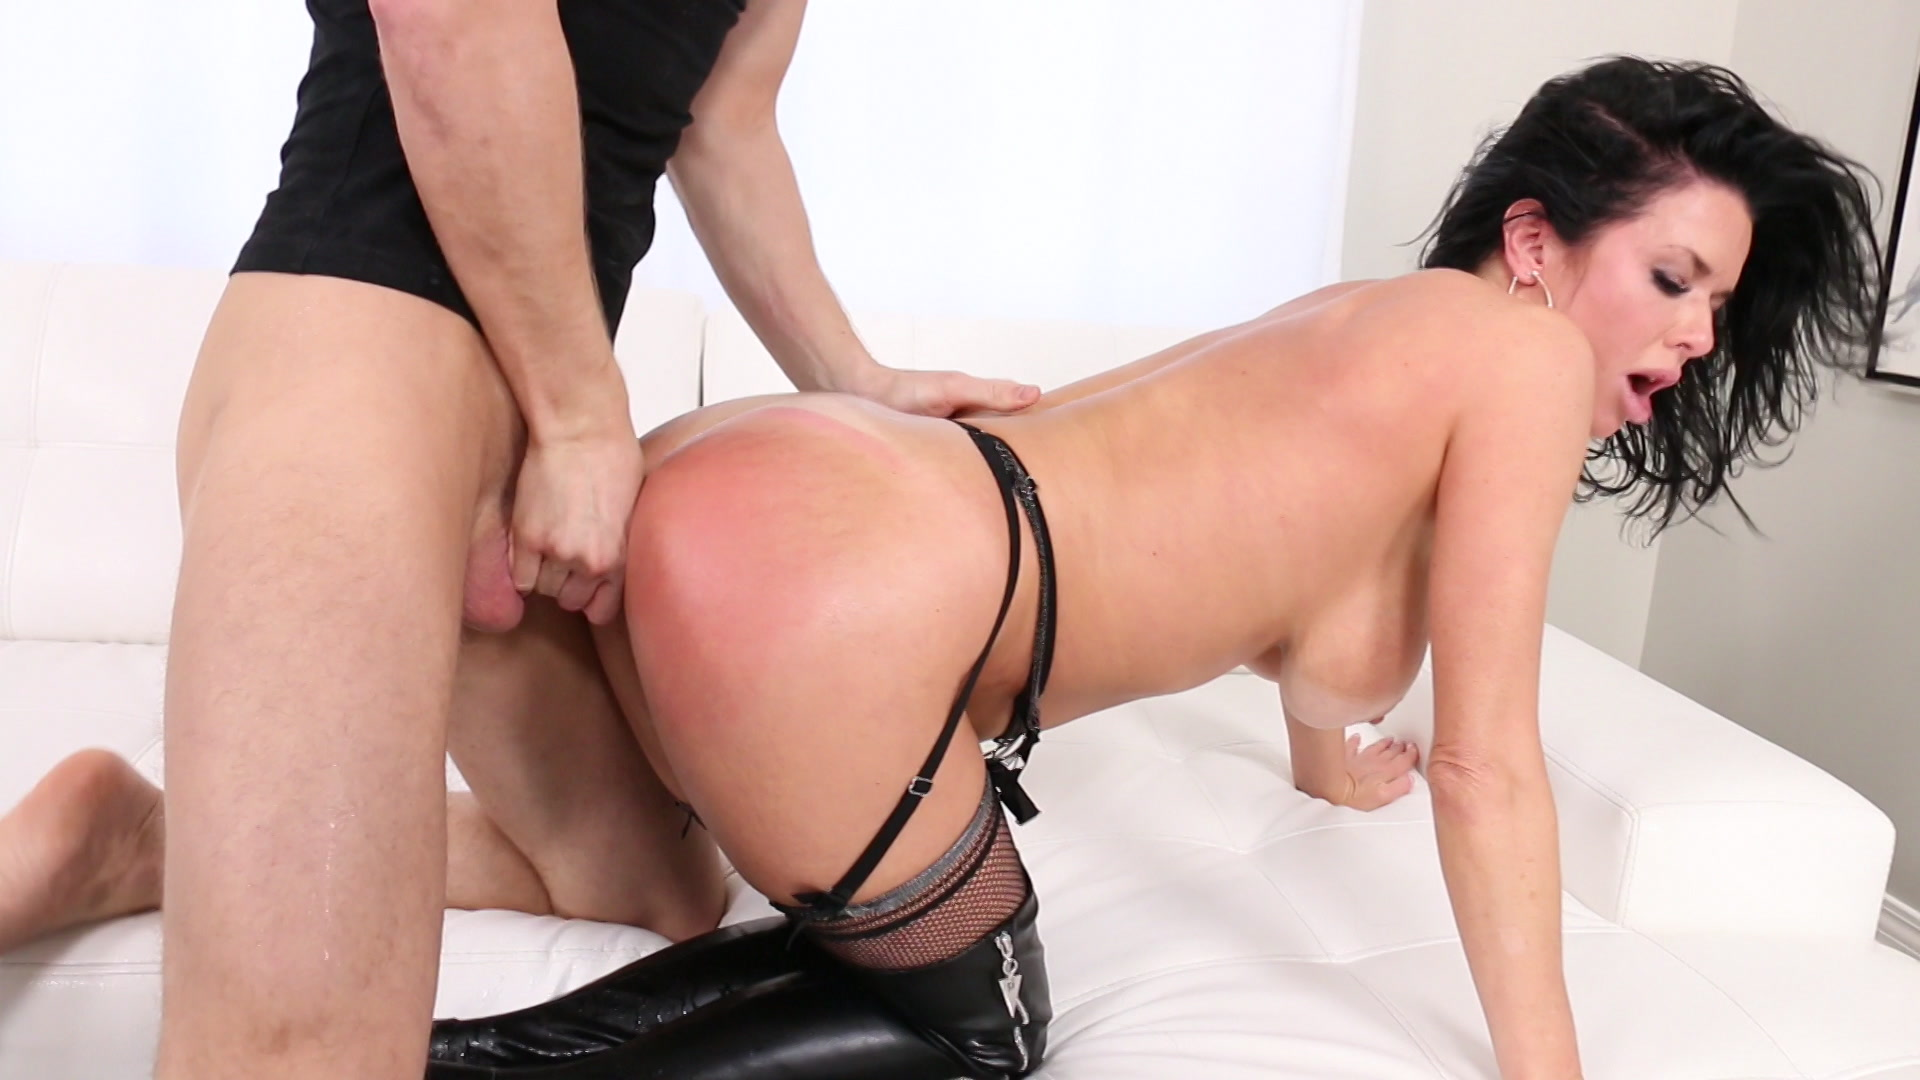 Scene with Veronica Avluv - image 12 out of 20